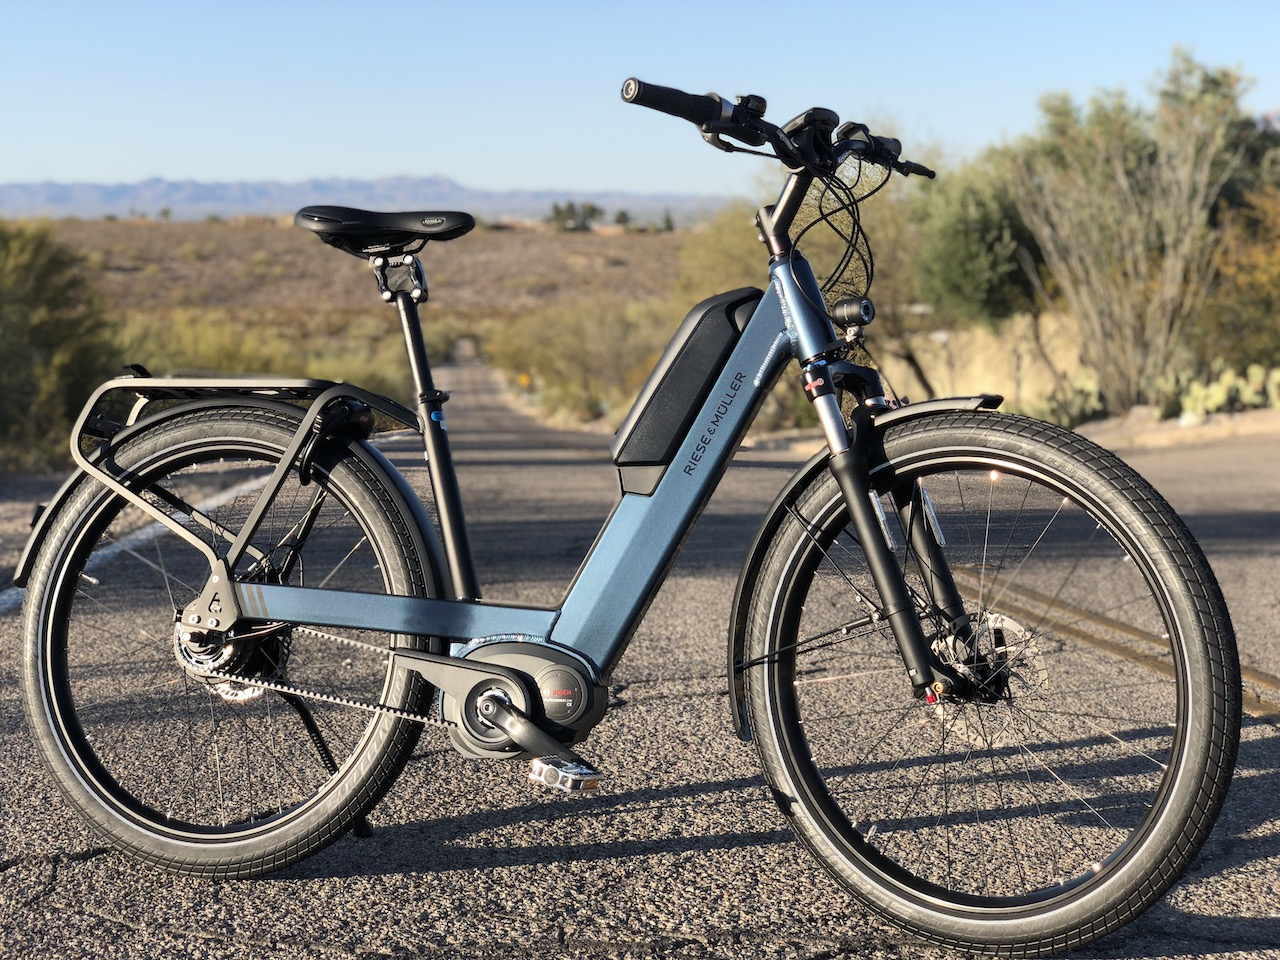 Electric Road Bike Reviews Prices Specs Videos Photos >> Riese Muller Nevo Electric Bike Review Part 1 Pictures